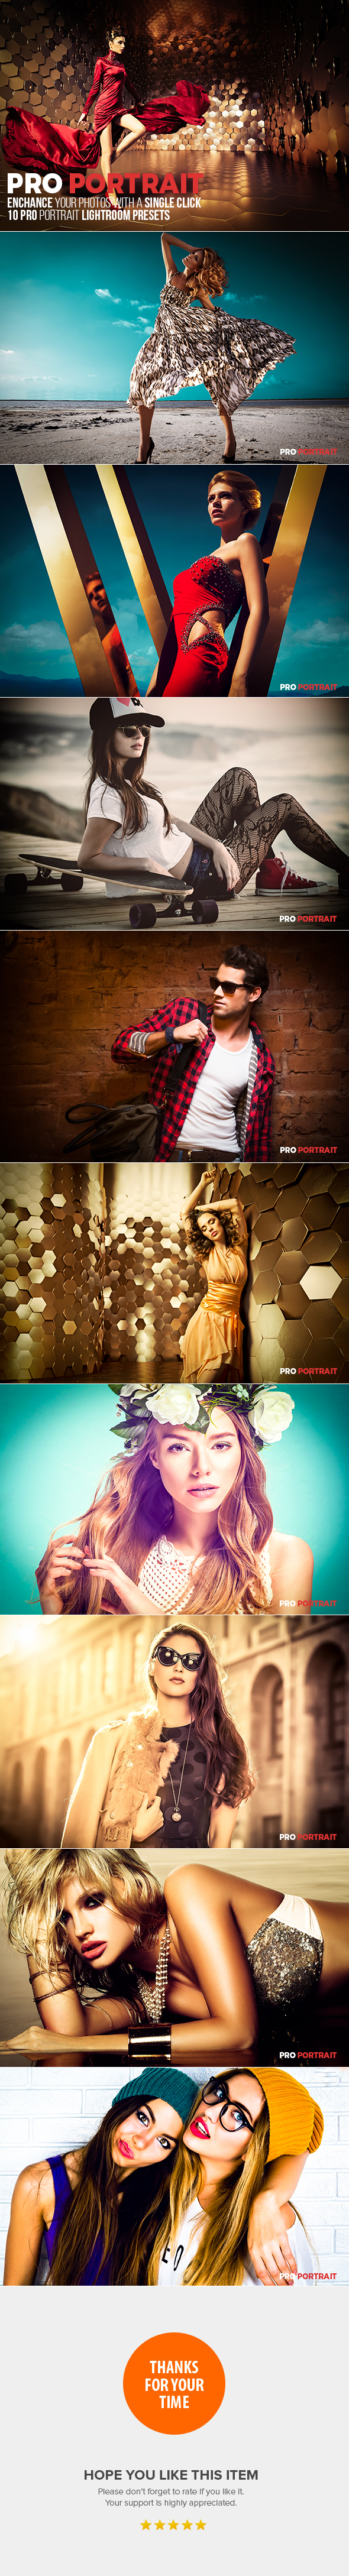 10 Pro Portrait Lightroom Presets by LrFlare-LRF | GraphicRiver